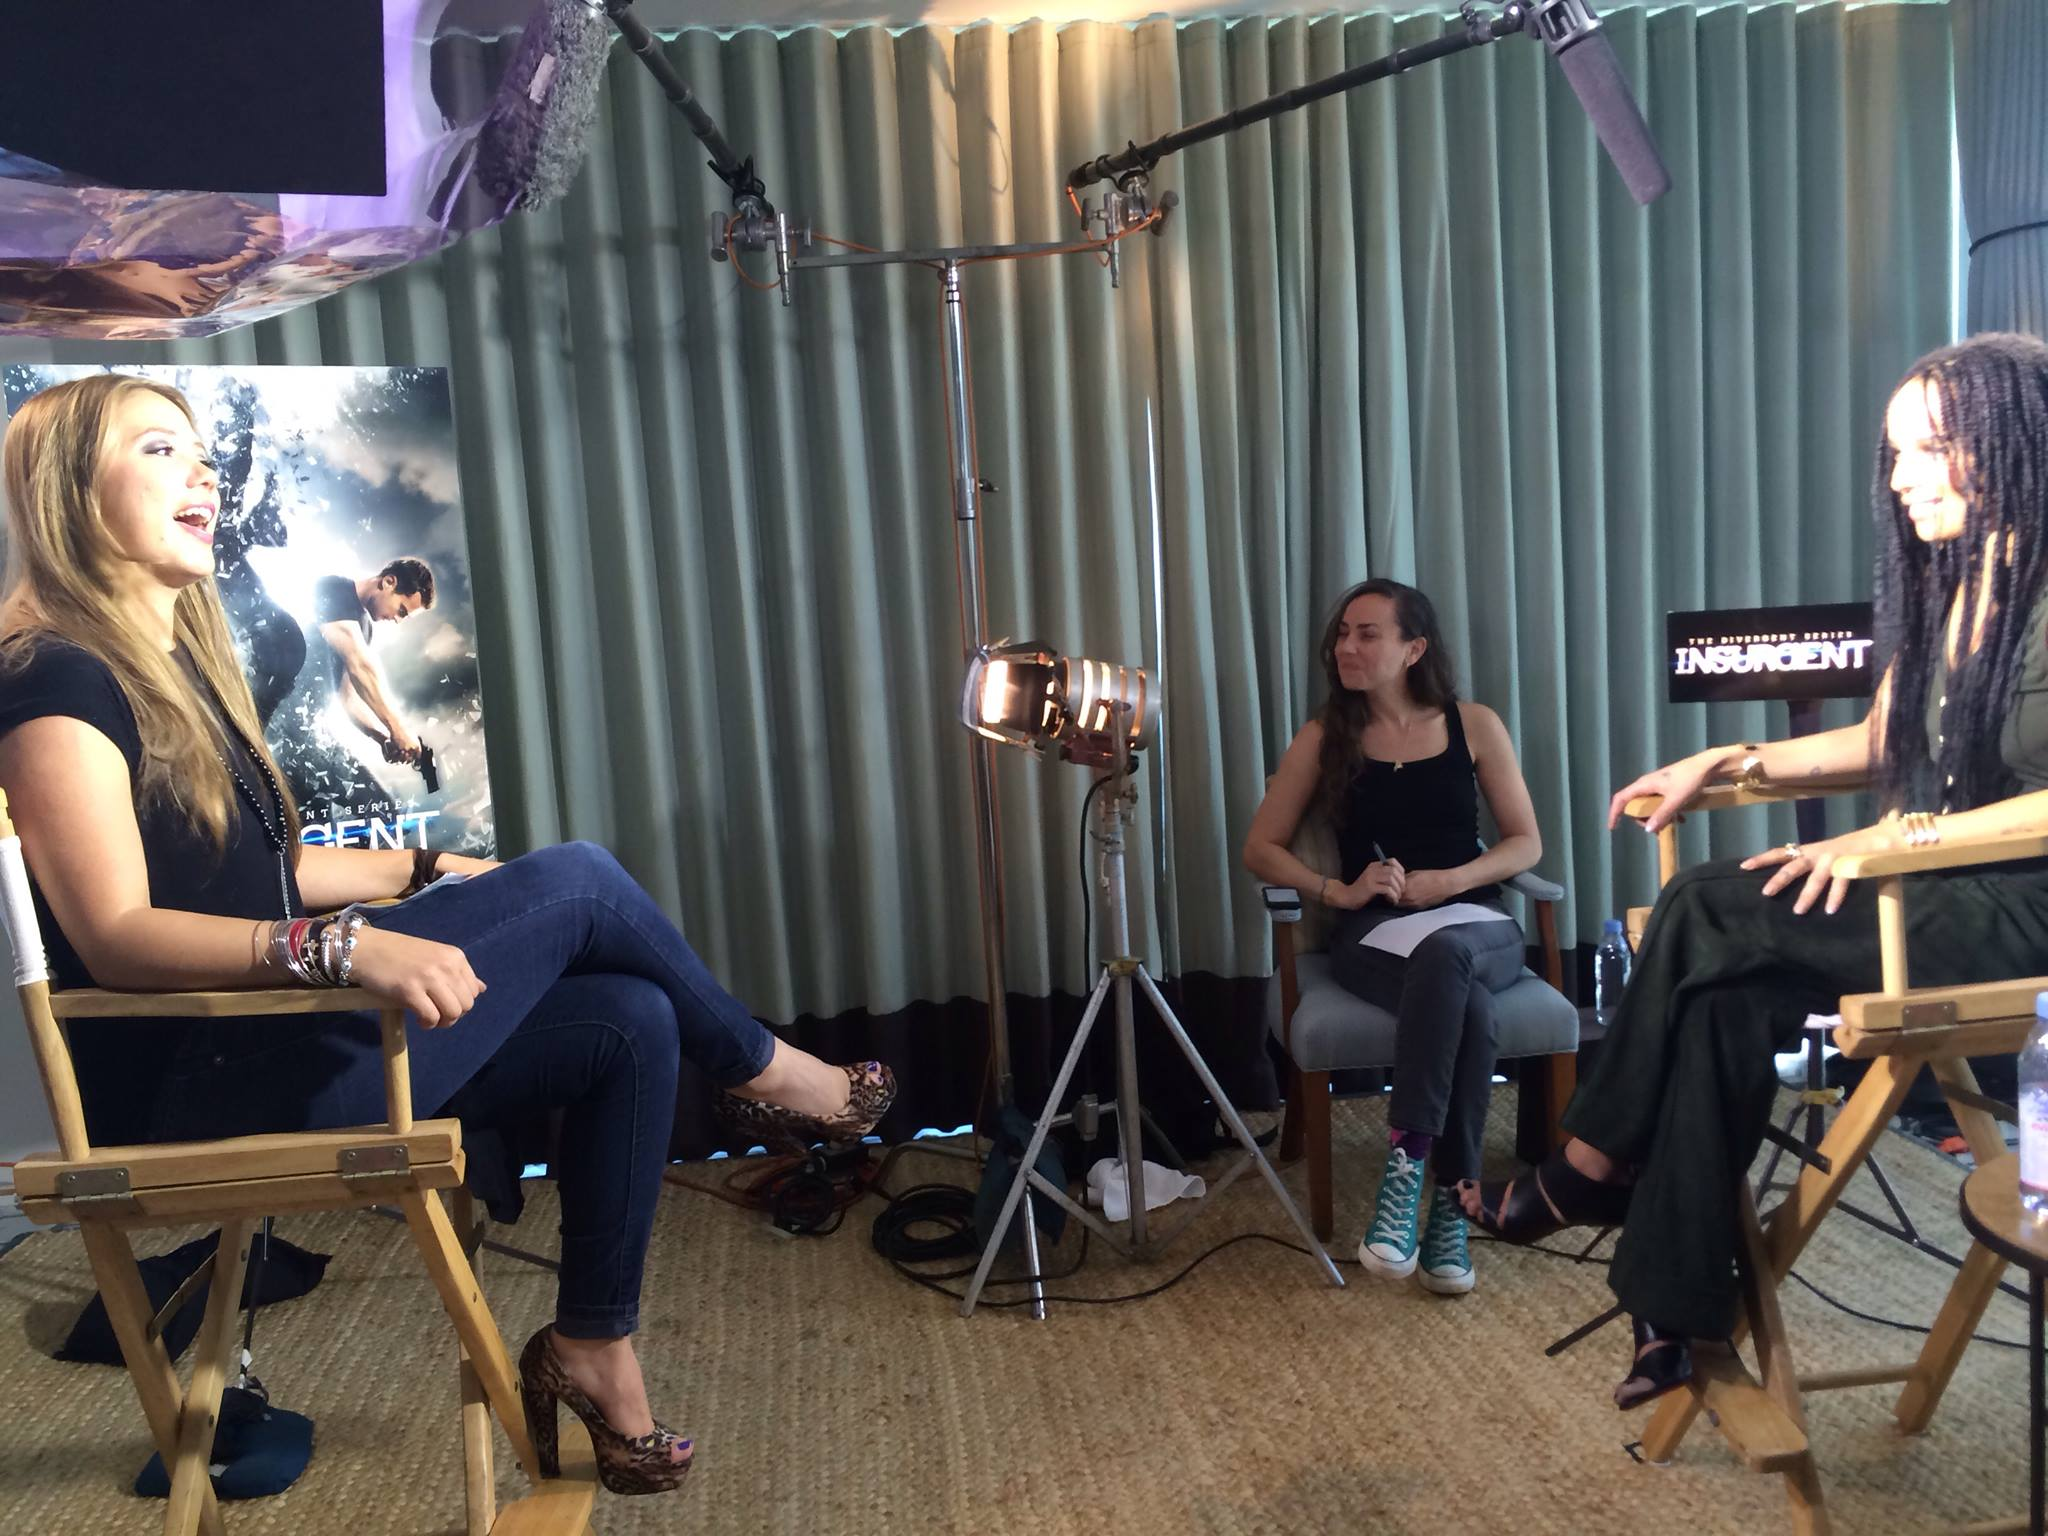 Meli Hernandez talks to Zoe Kravitz about Insurgent :)